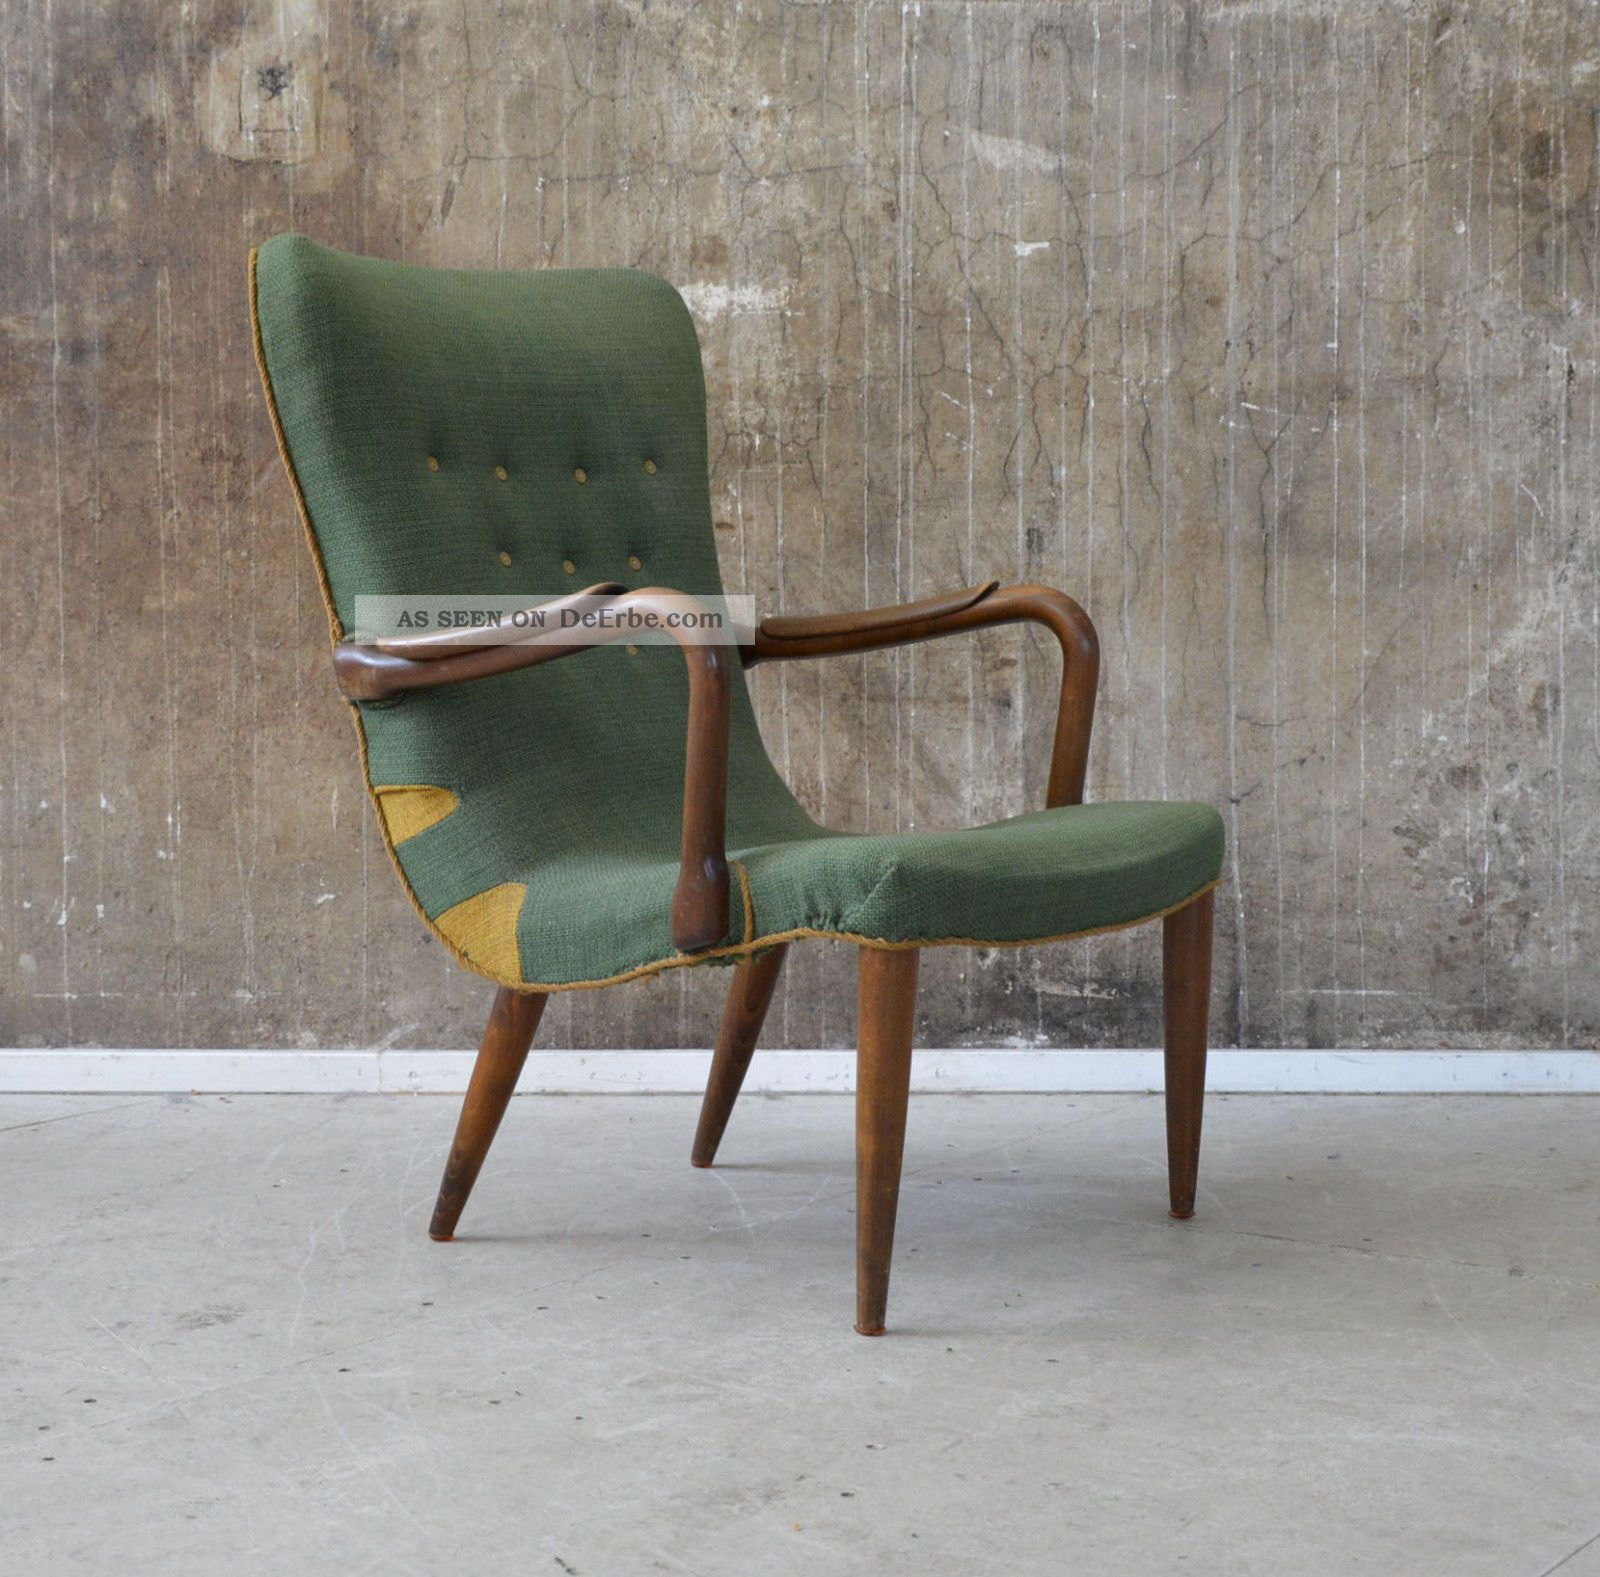 50er Sessel Midcentury 50s Vintage Easy Chair Danish Design Finn Juhl ära 60s